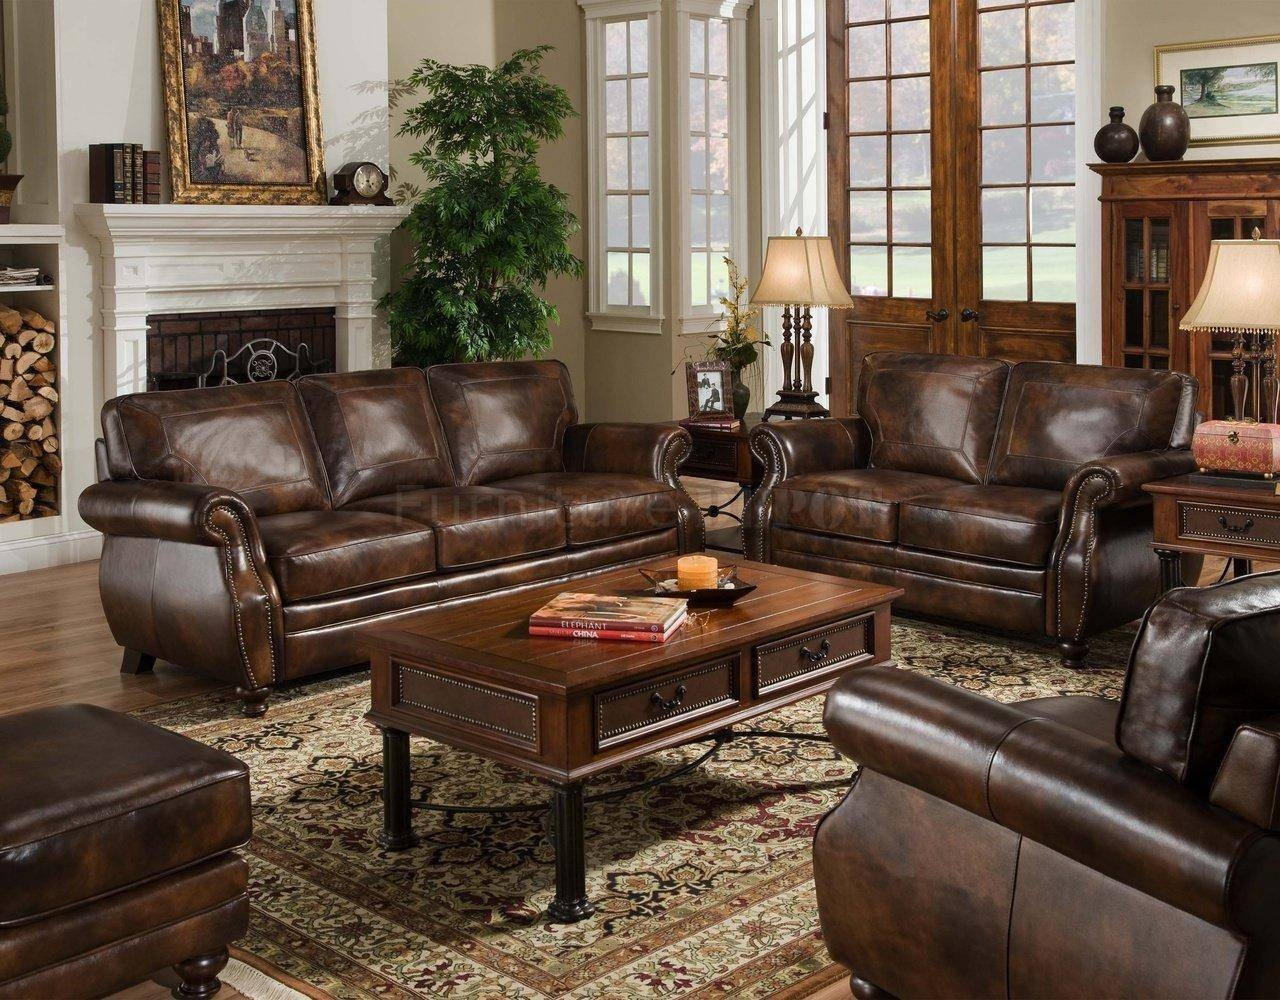 Sagle Classic Saddle Traditional Leather Sofa With Nail Head Trim intended for Traditional Leather Couch (Image 17 of 30)